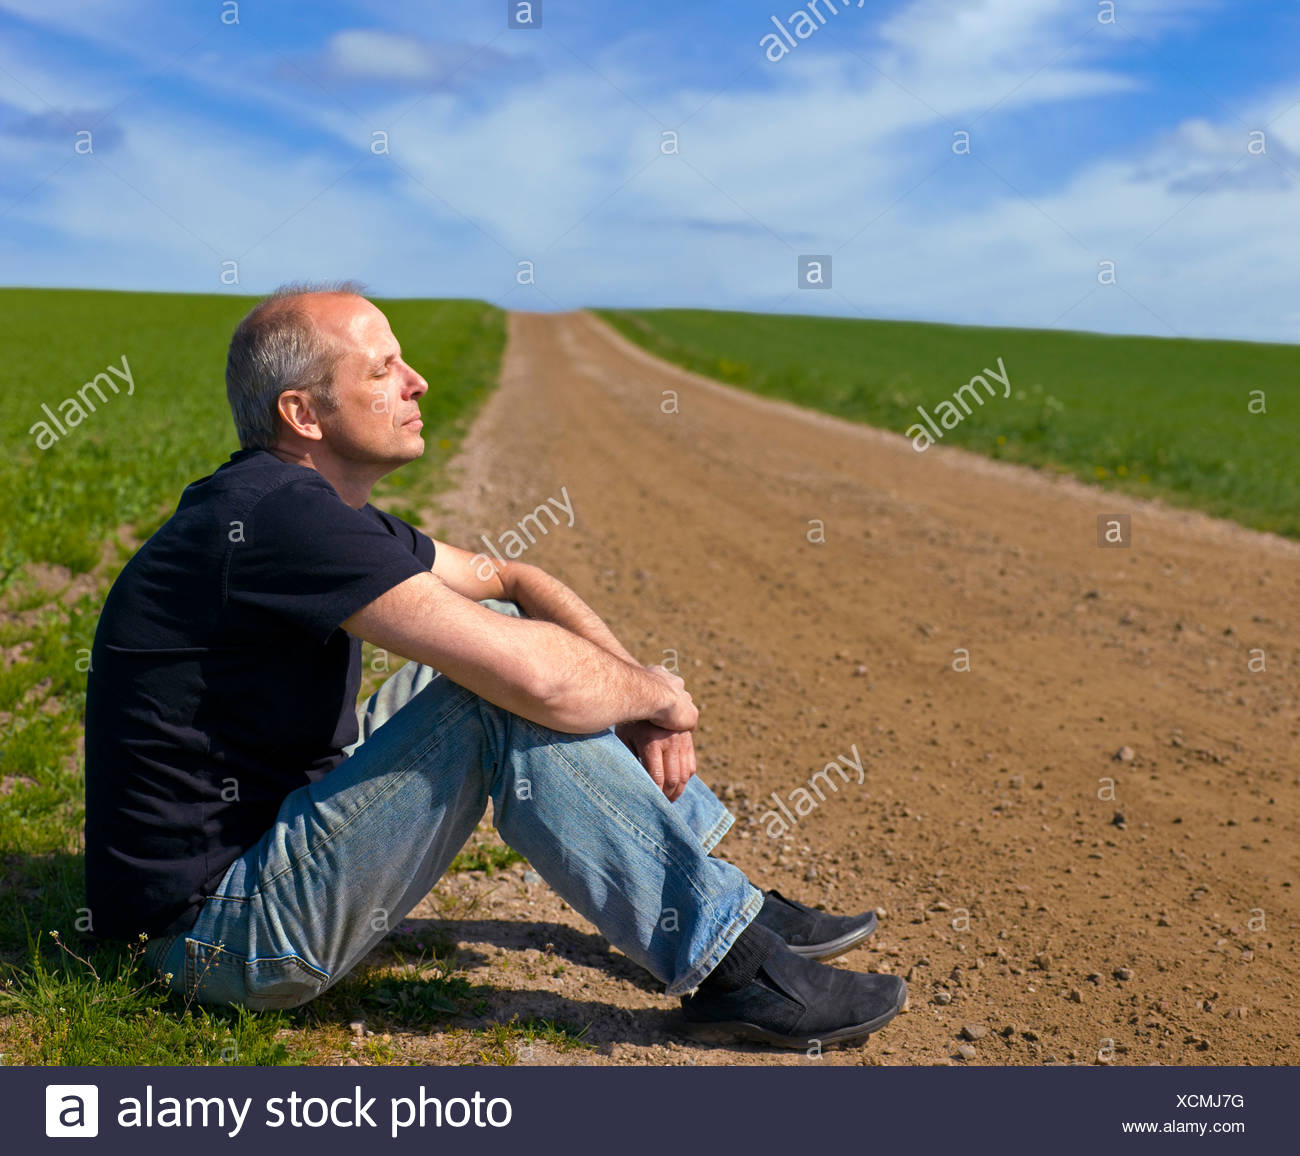 Side view of a mid adult man in casuals on the dirt country road along landscape - Stock Image